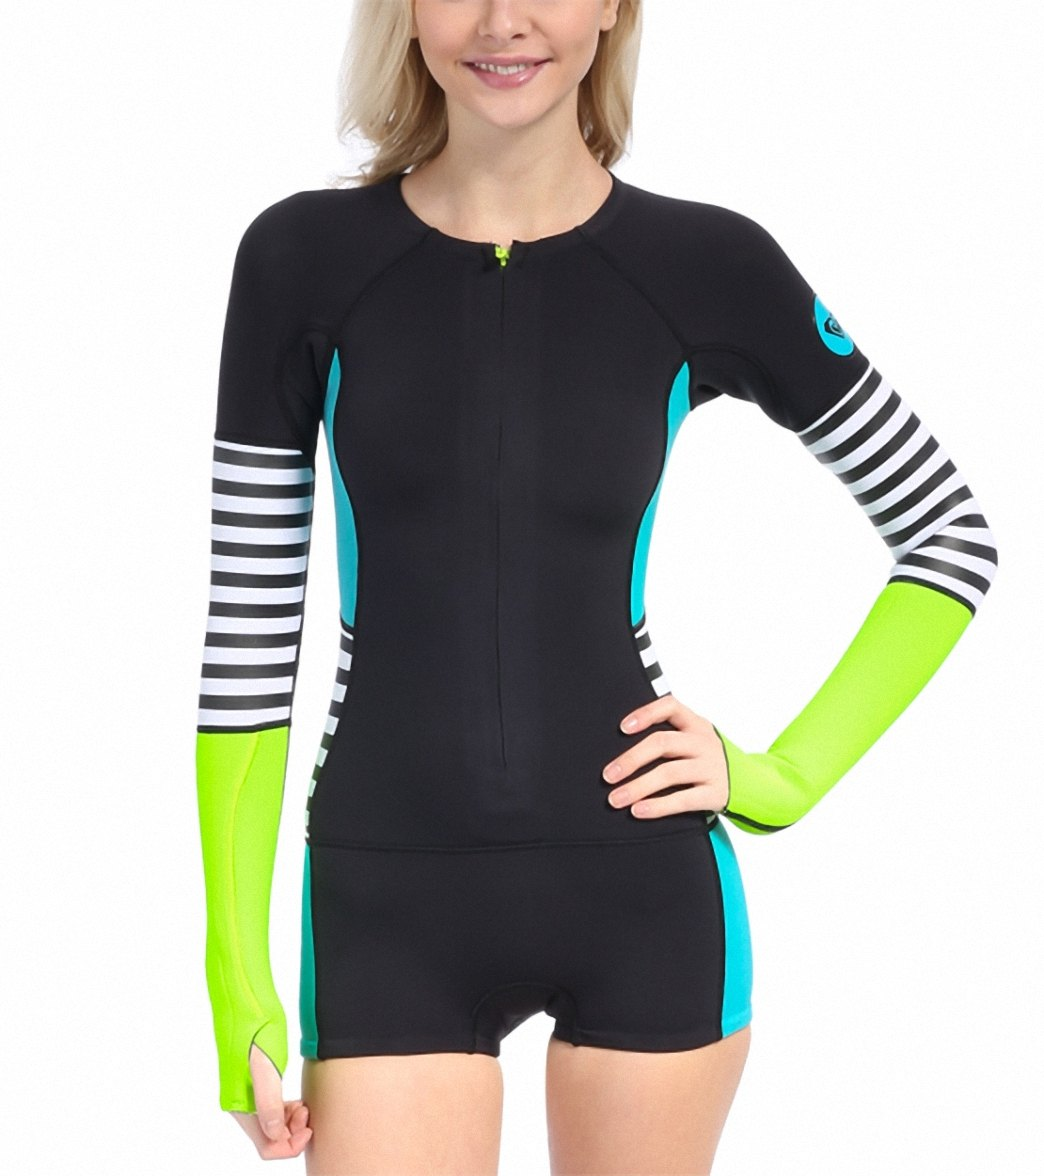 Roxy Waveline Spring Suit At Swimoutlet Com Free Shipping